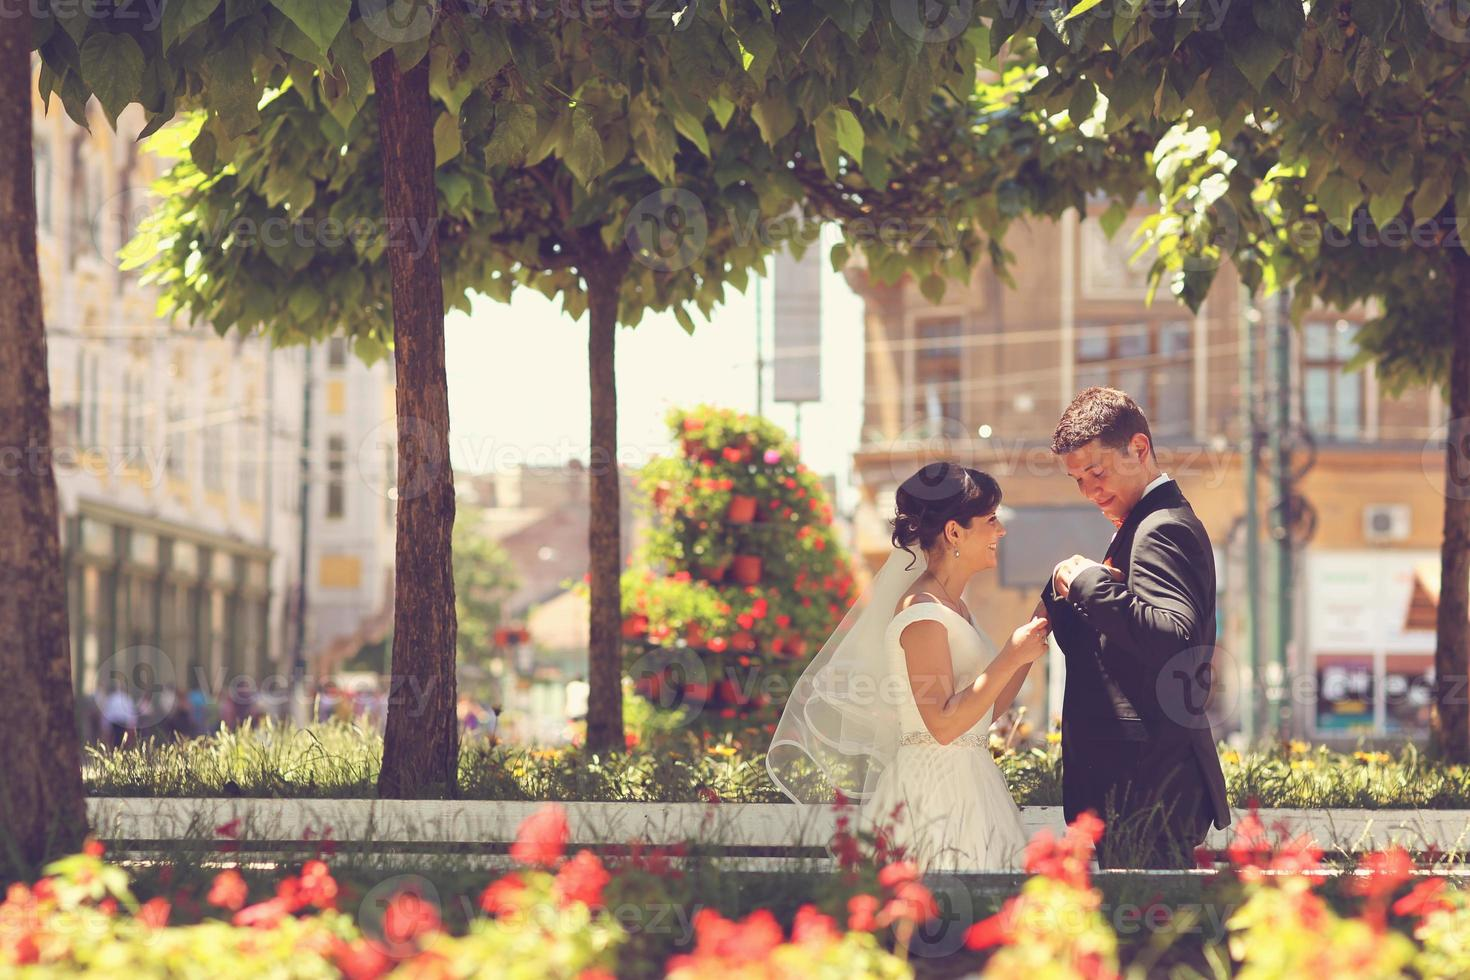 Bride and groom in the city photo